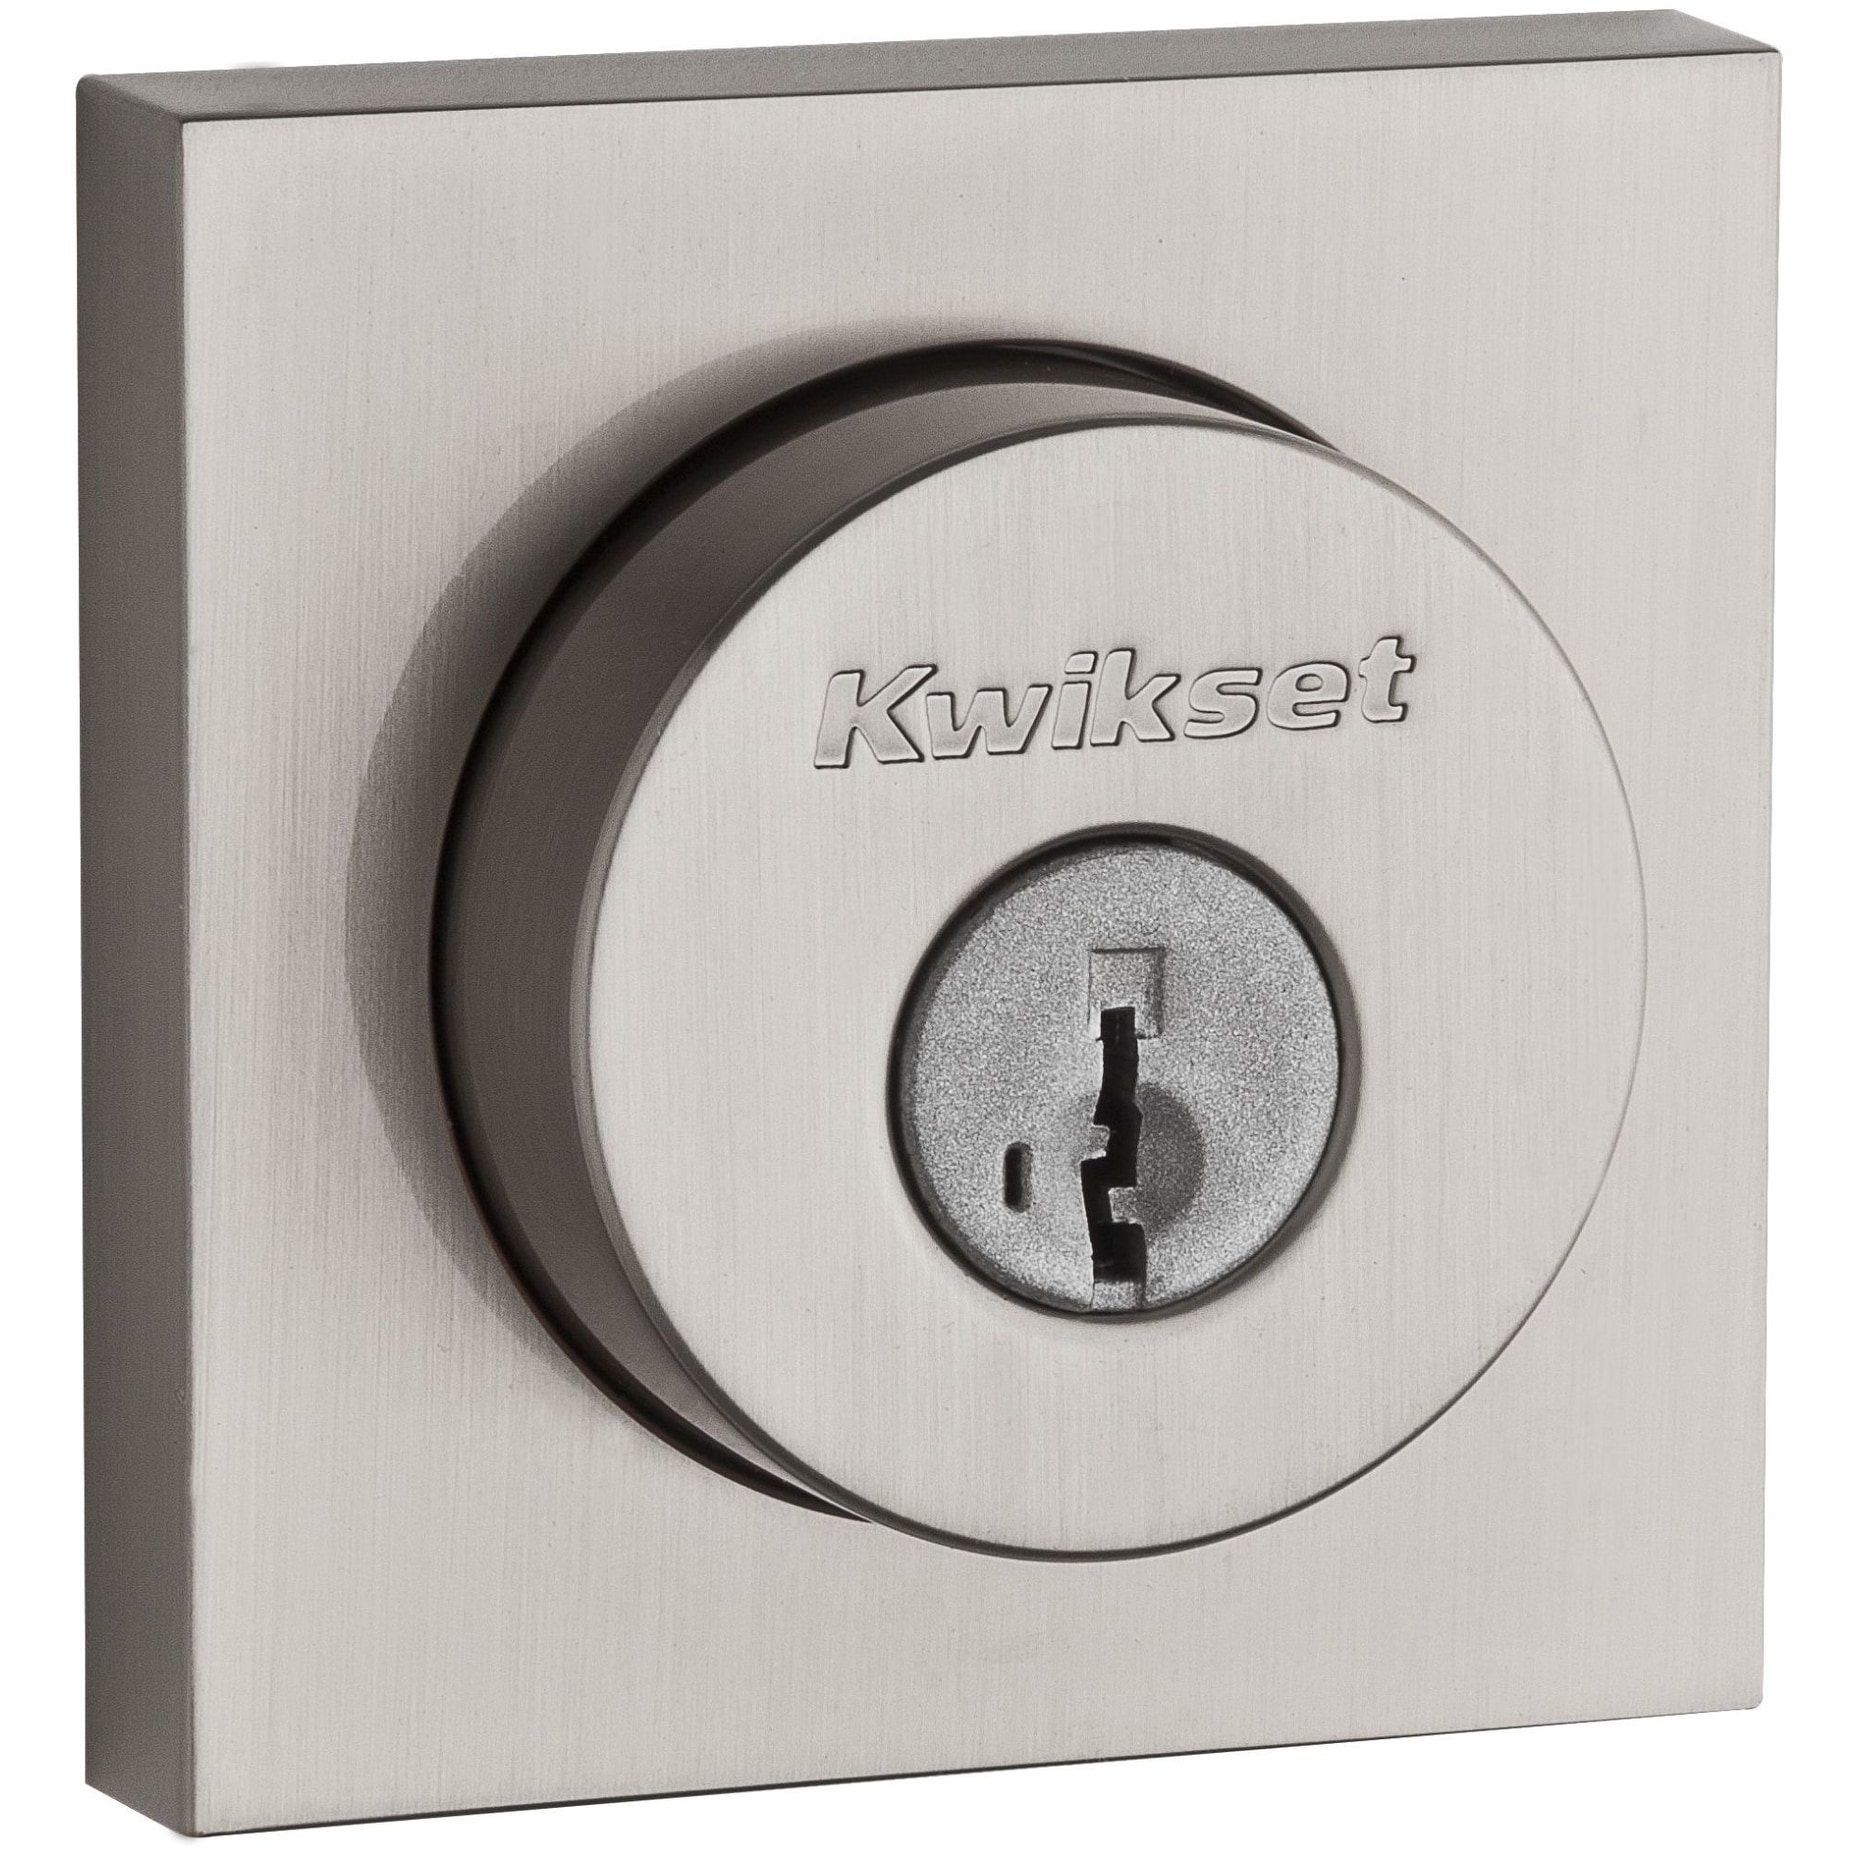 Kwikset 158sqt S Halifax Single Cylinder Deadbolt With Smartkey Overstock 17125366